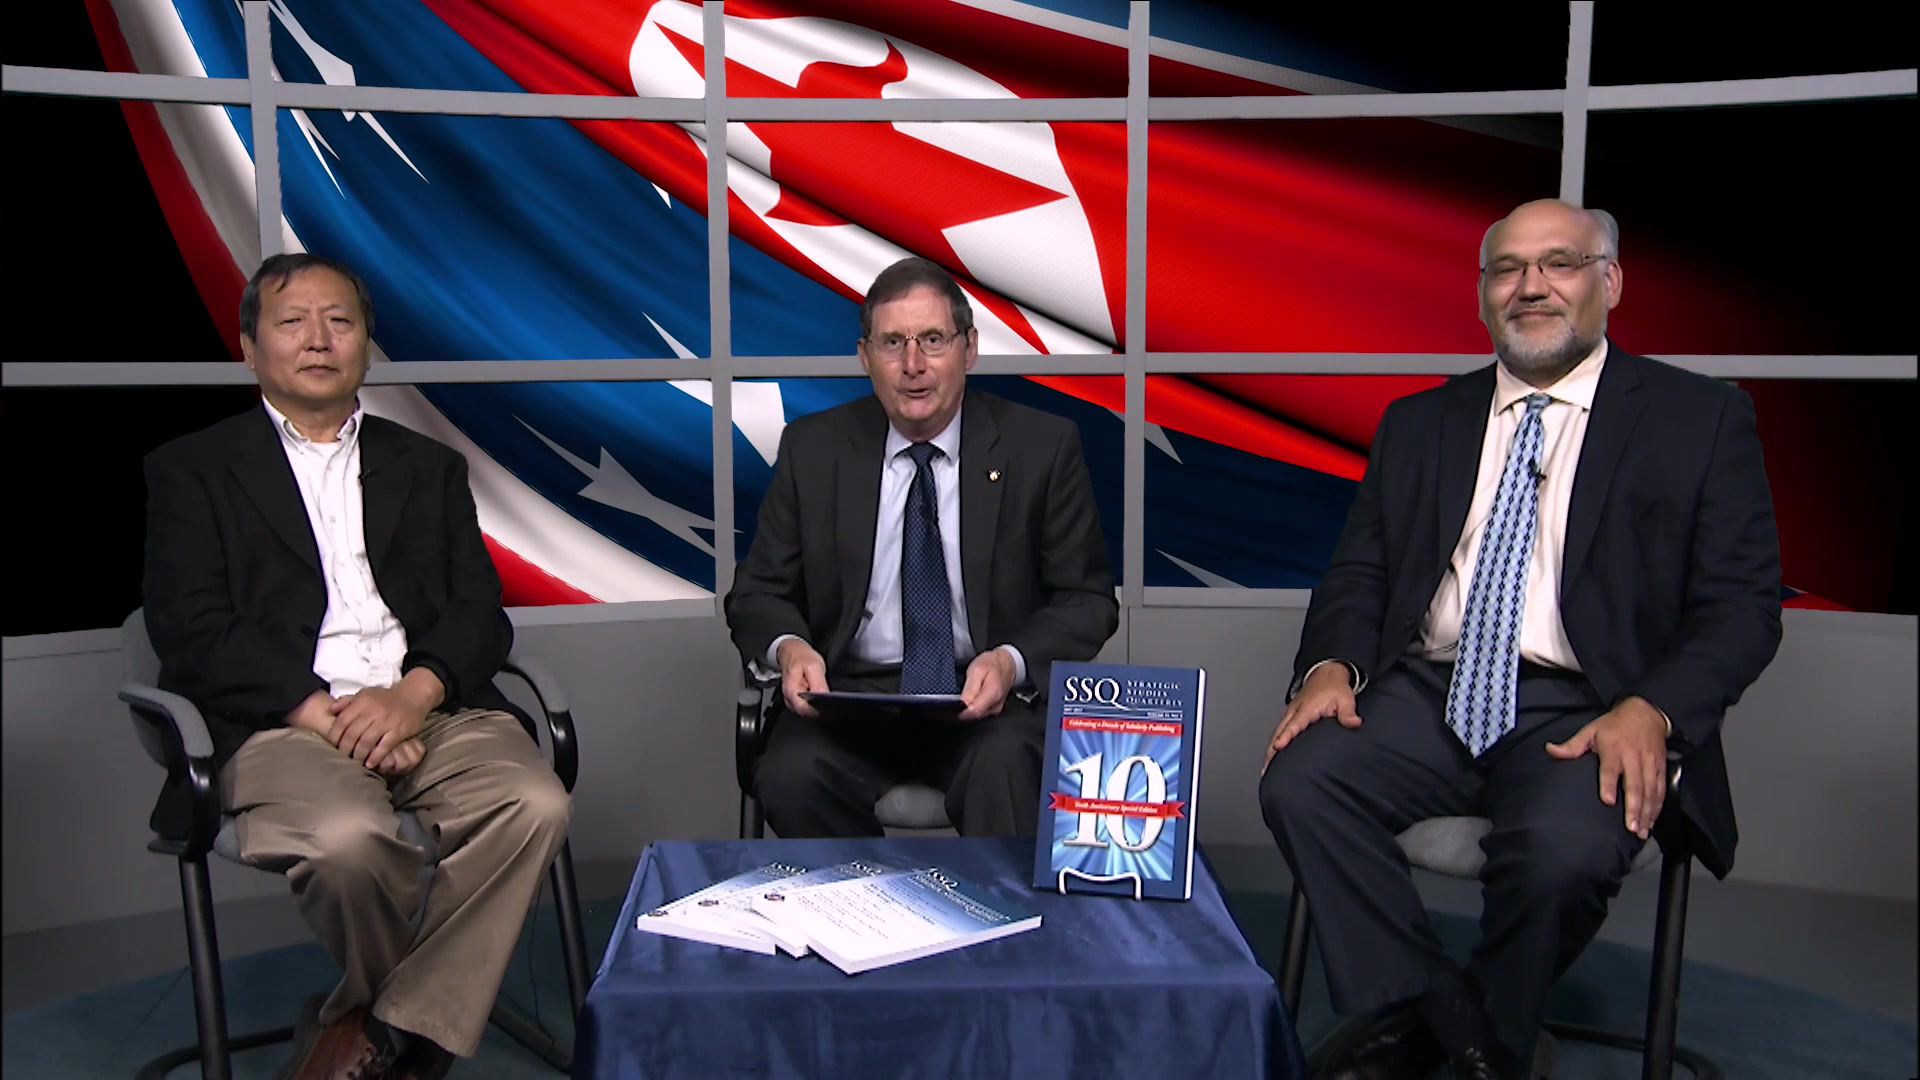 The first edition of a Strategic Studies Quarterly (SSQ): Issues and Answers, where the Editor of SSQ hosts a discussion about North Korea with 2 professors from Air University's Air War College (AWC) and Air Command and Staff College (ACSC).   Michael Guillot - Editor, SSQ Dr. Xiaoming Zhang - Professor of Strategy, AWC Dr. Michael Kraig - Associate Professor of National Security Studies, ACSC